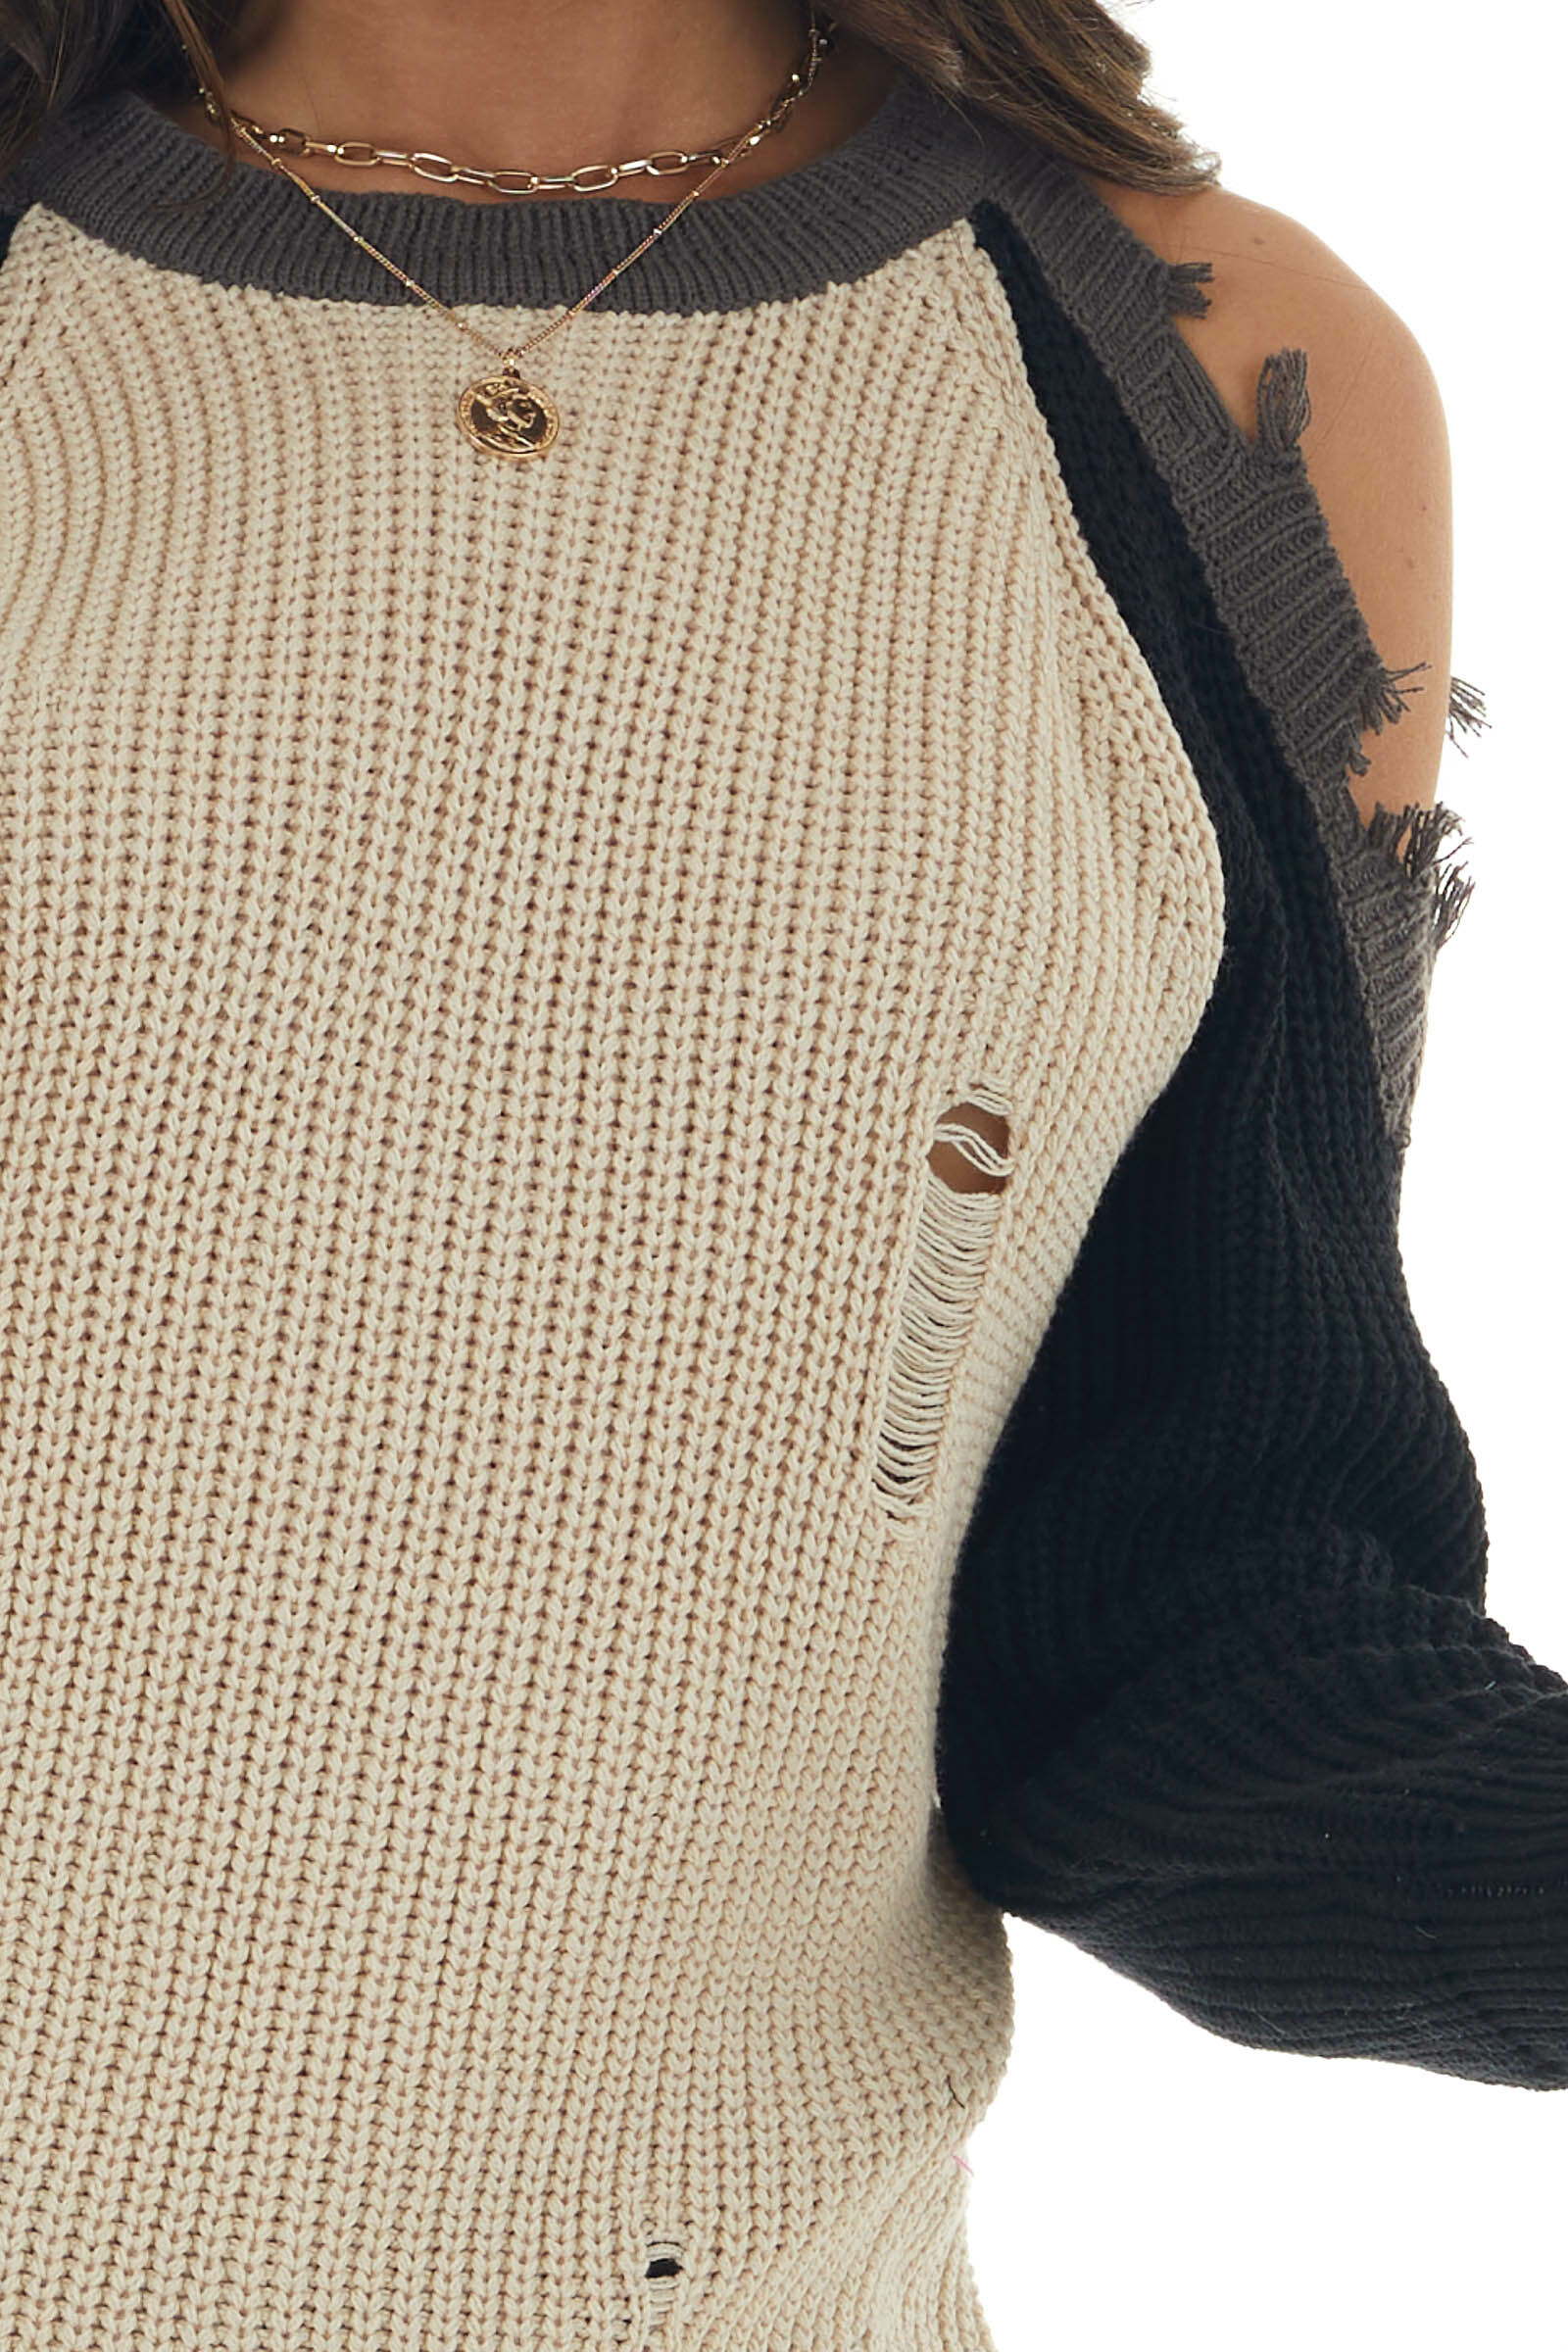 Black Colorblock Sweater with Cold Shoulders